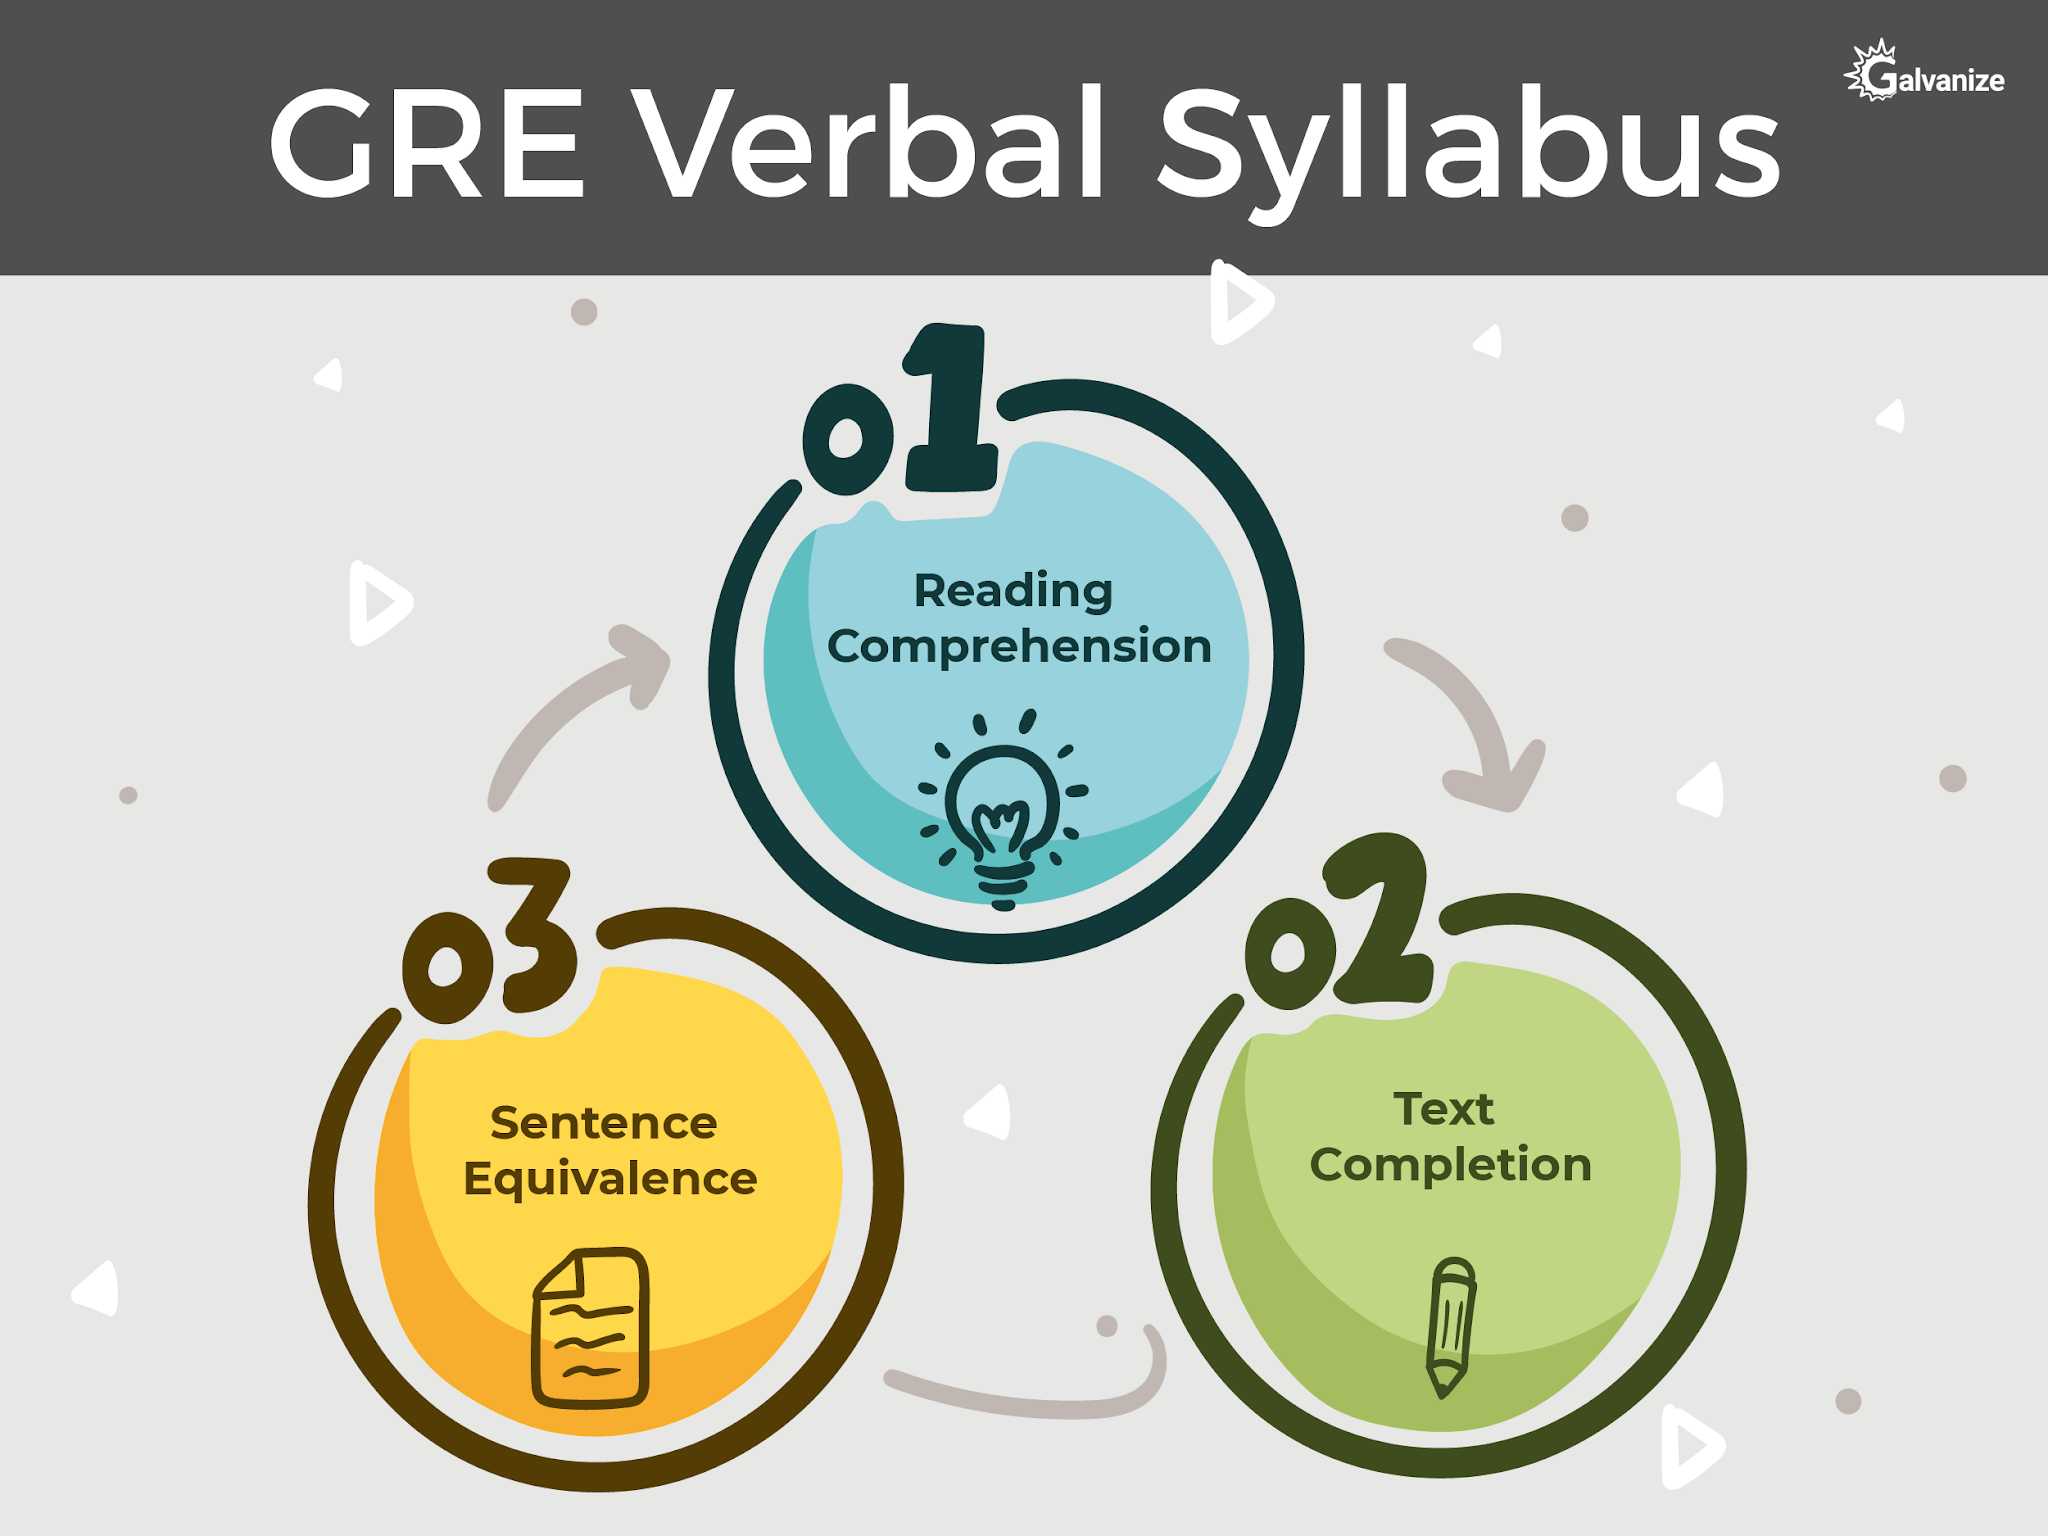 GRE verbal Syllabus | Reading Comprehension, sentence Equivalance, text completion